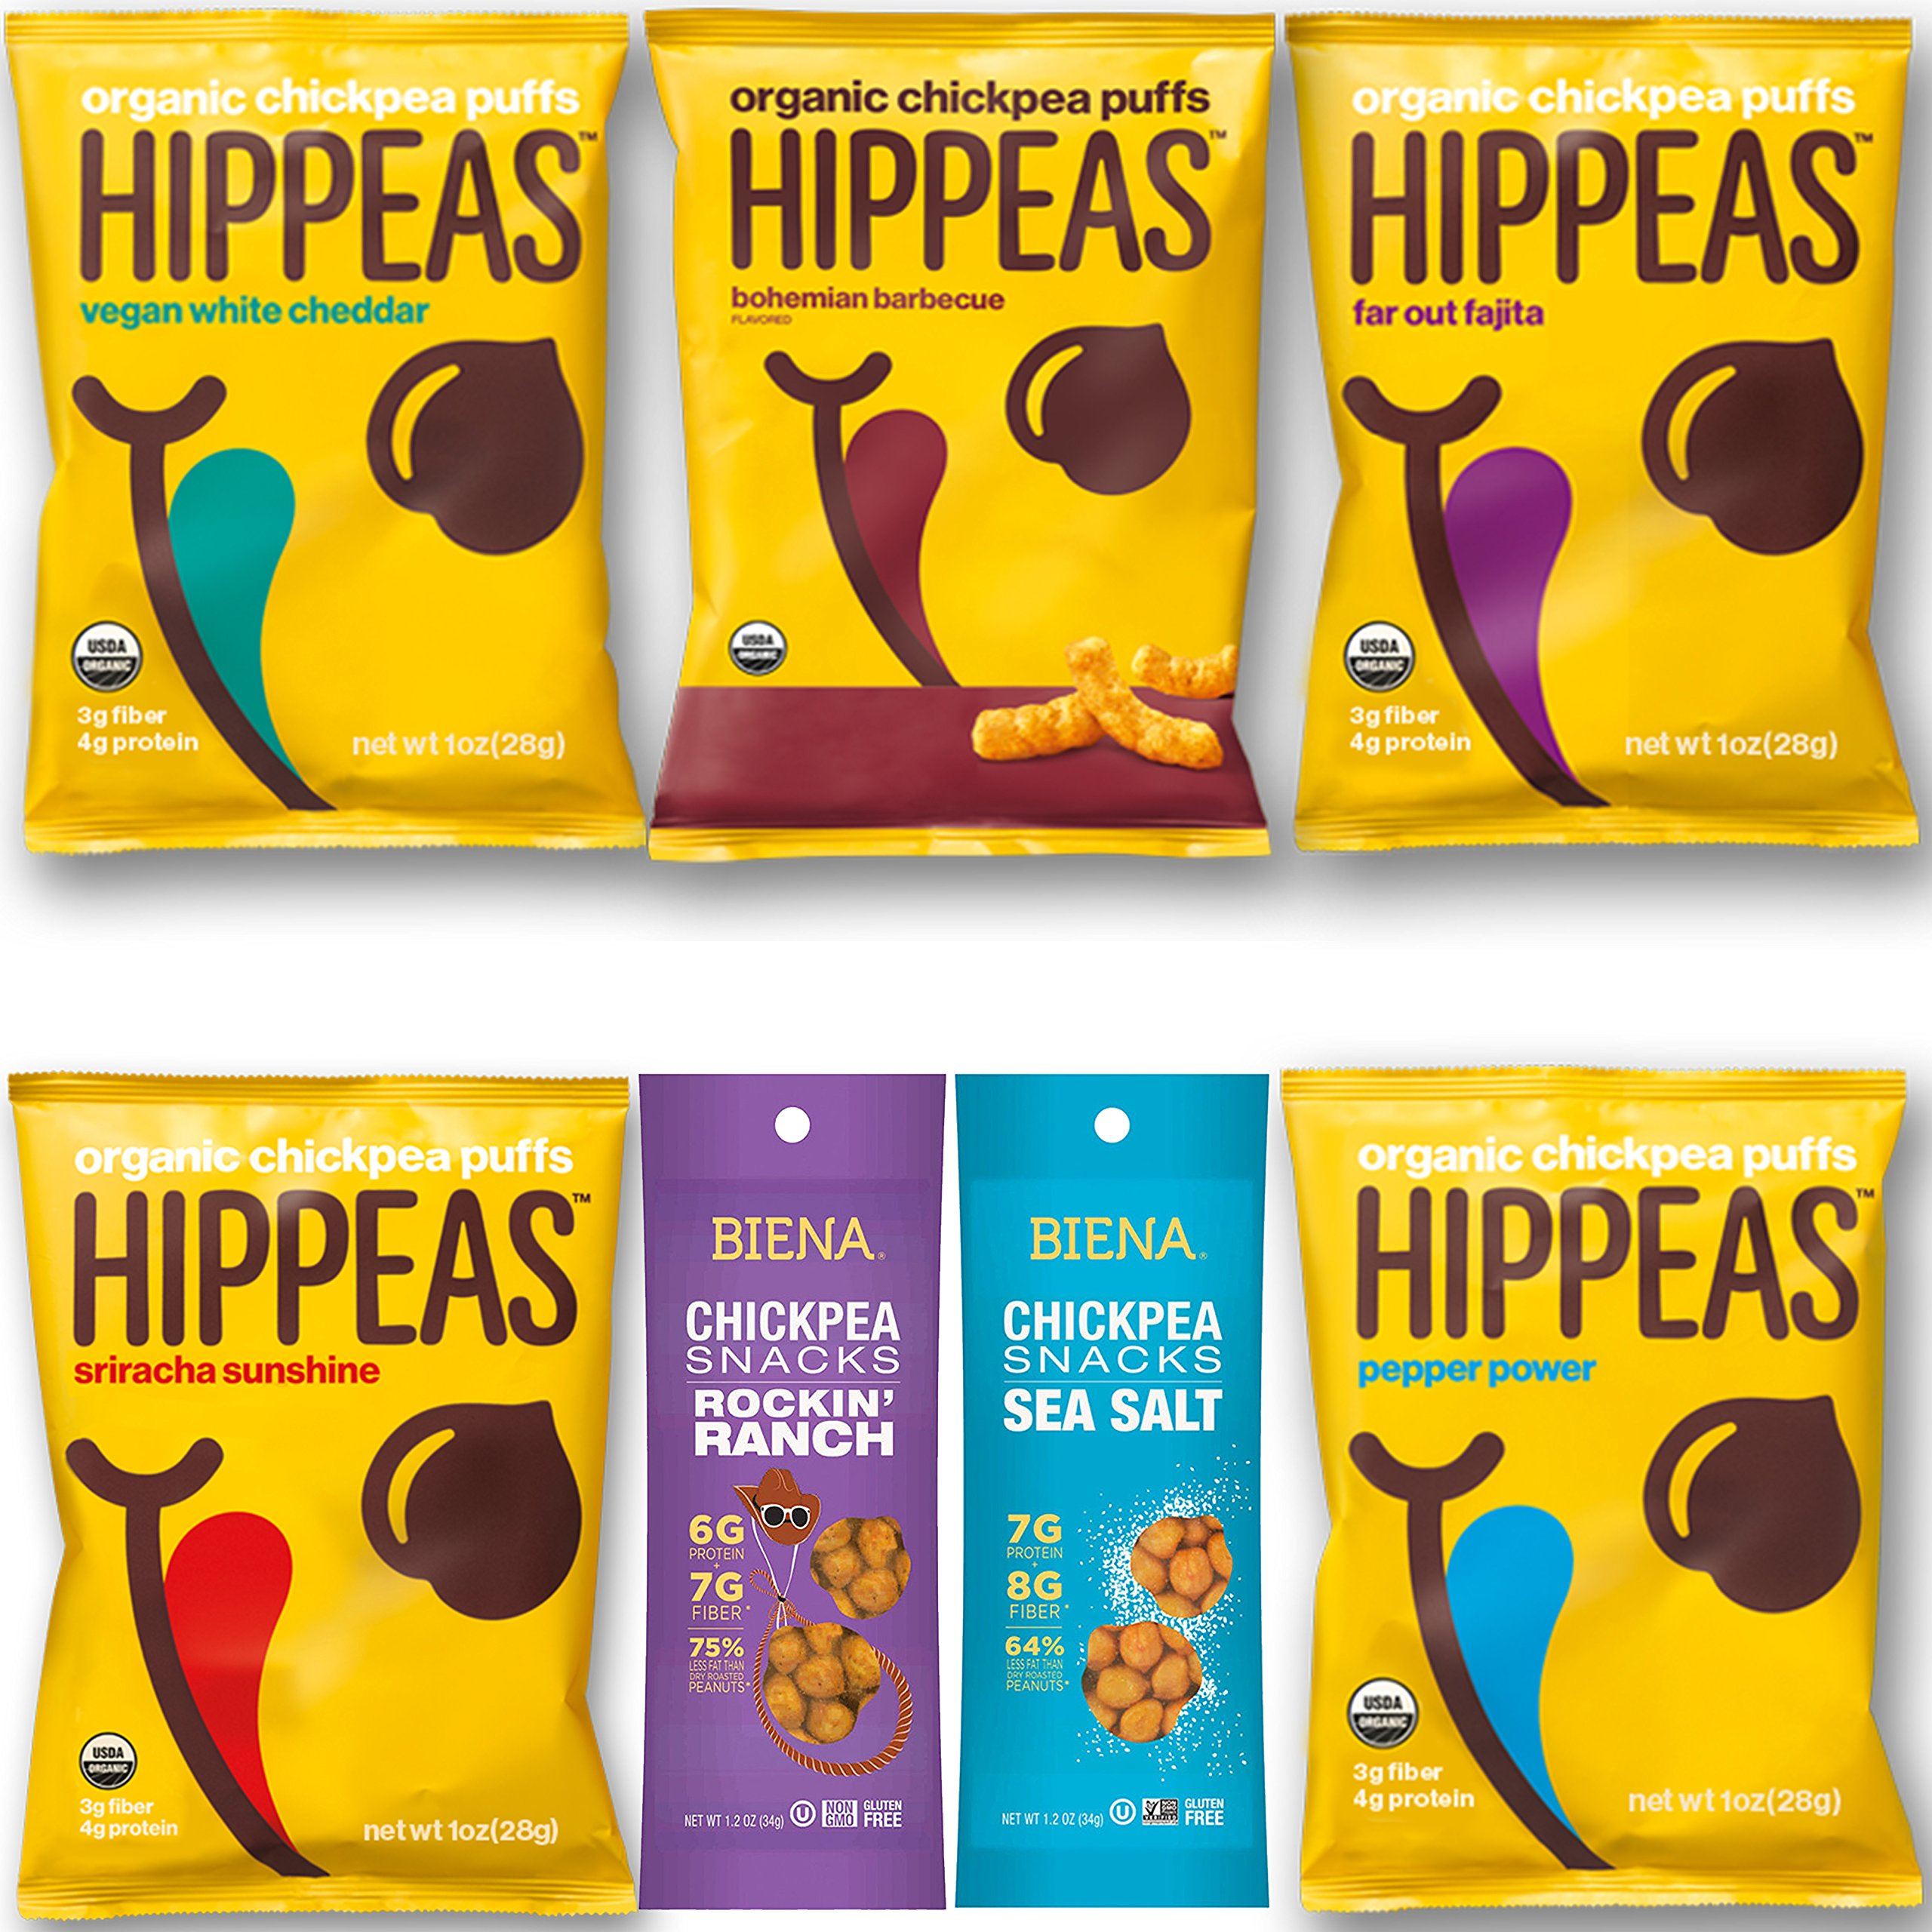 Vegan Happy and Healthy Snacks Variety Pack Sampler, Different Flavor Chickpeas, Include 1 Ounce Hippeas and 1.2 Ounce Biena Chickpea Snacks (14 Count)